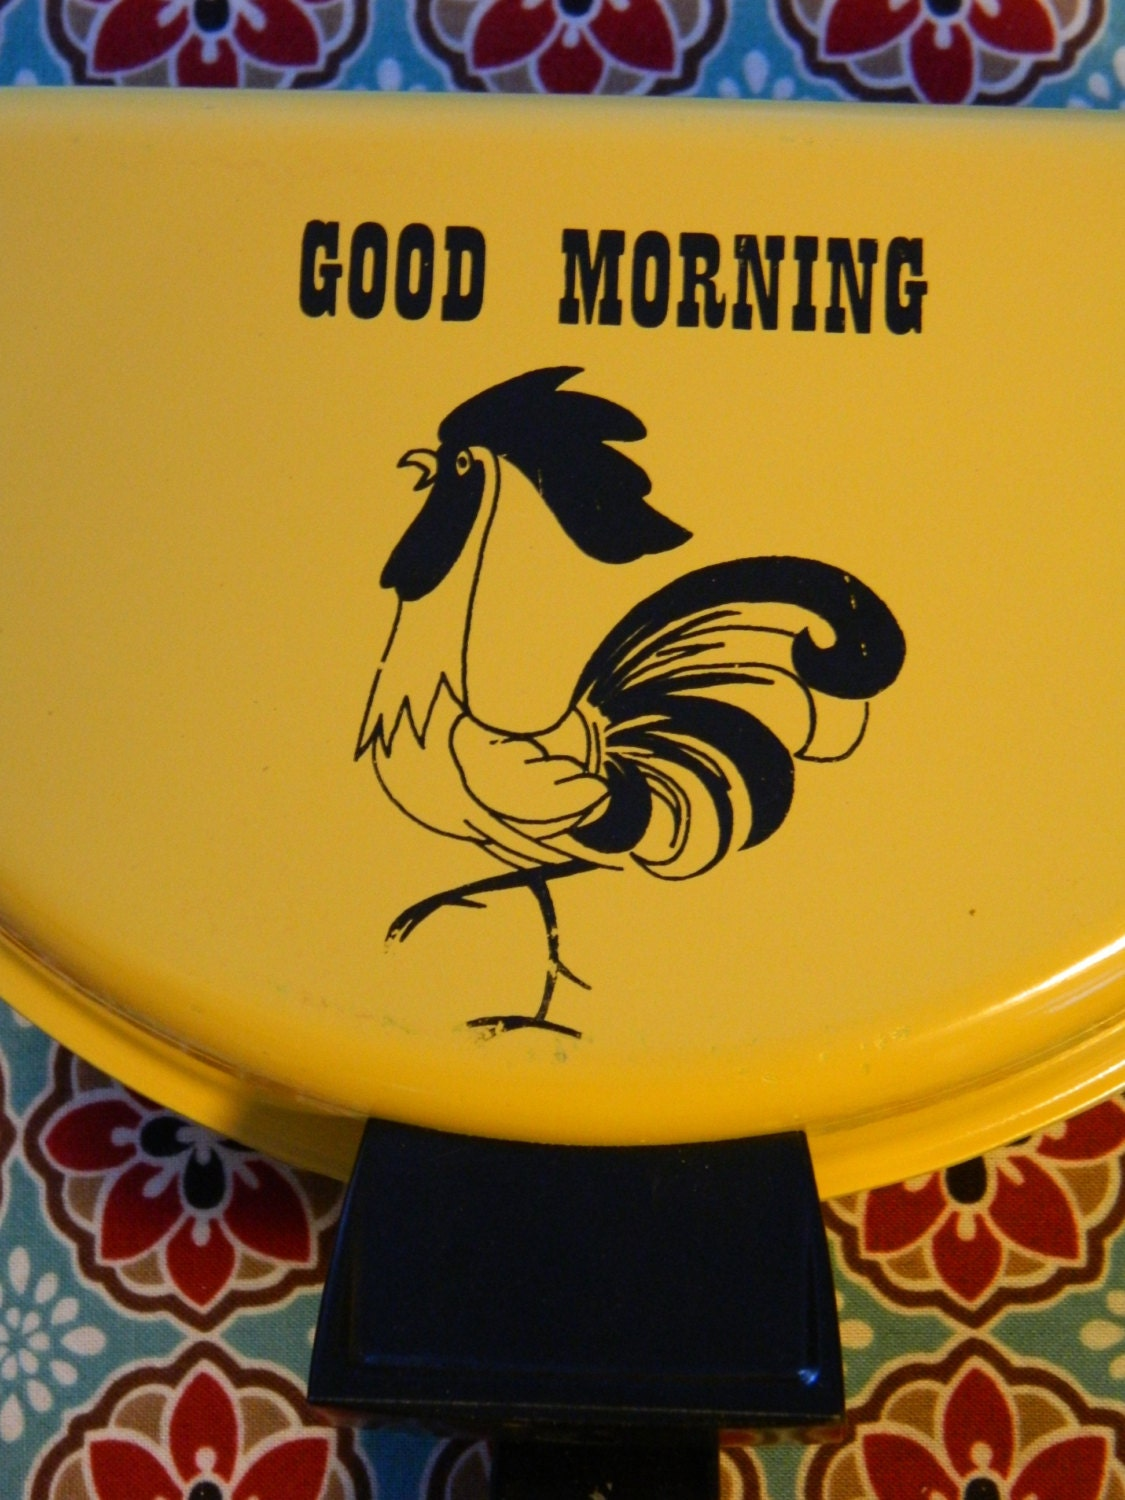 Good Morning Vintage Photos : Vintage good morning yellow rooster omelet by